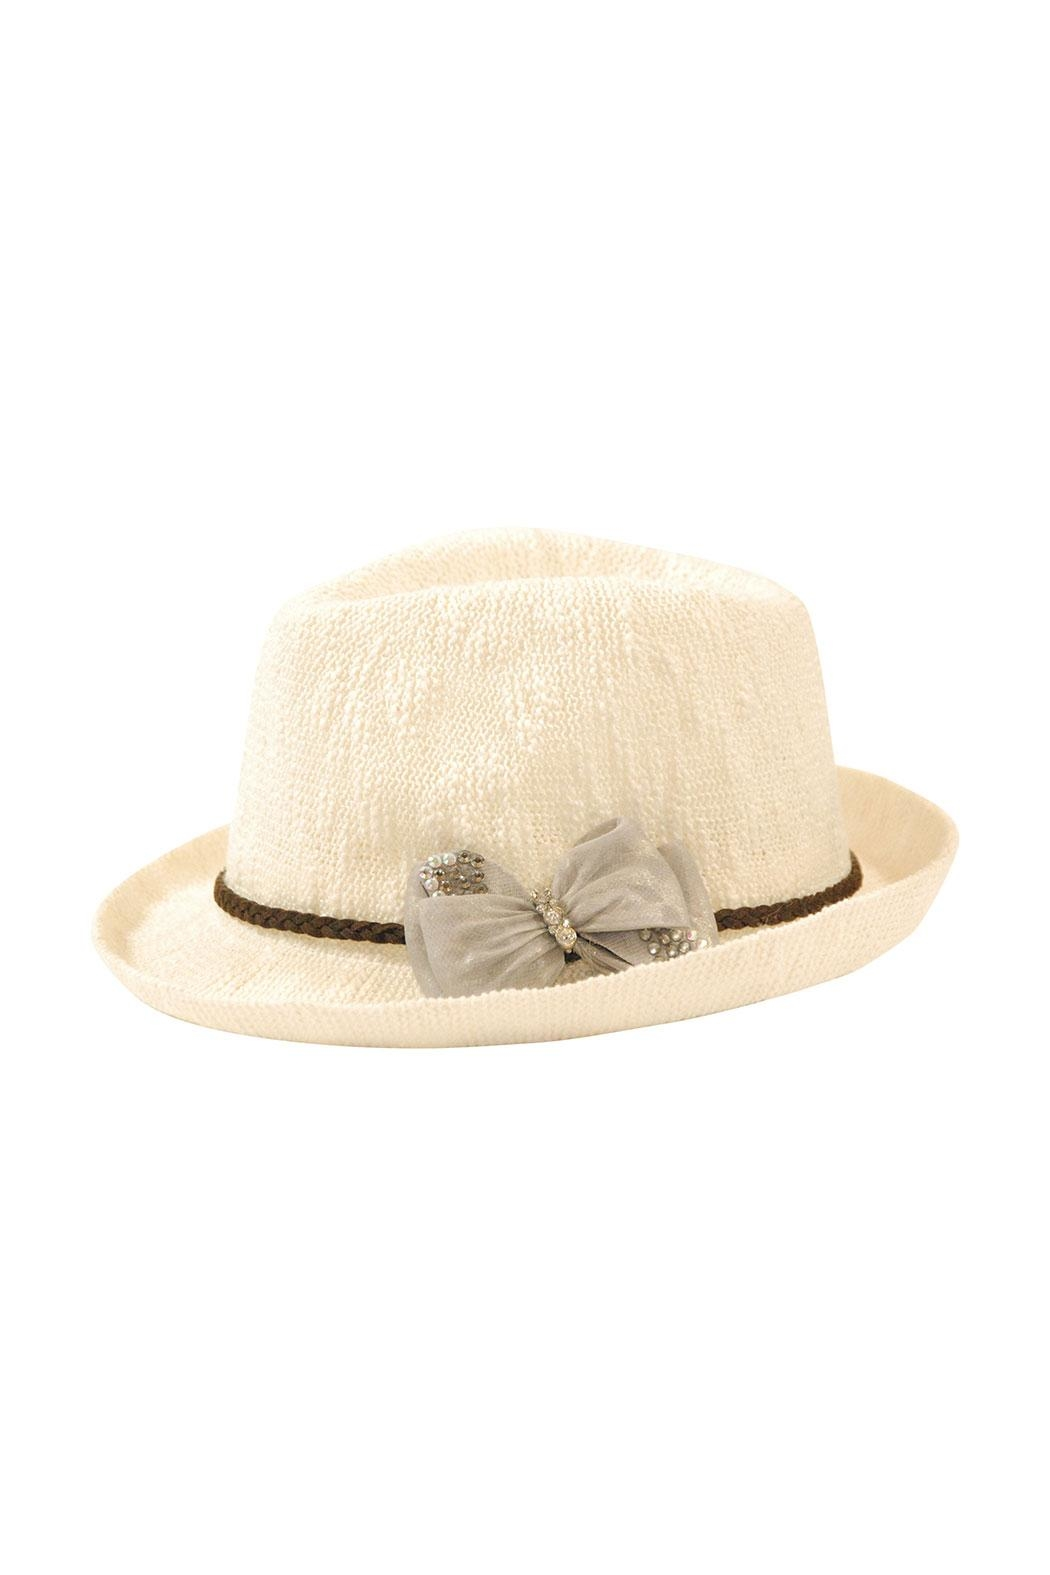 Nadya's Closet Bow Accent Fedora - Front Cropped Image